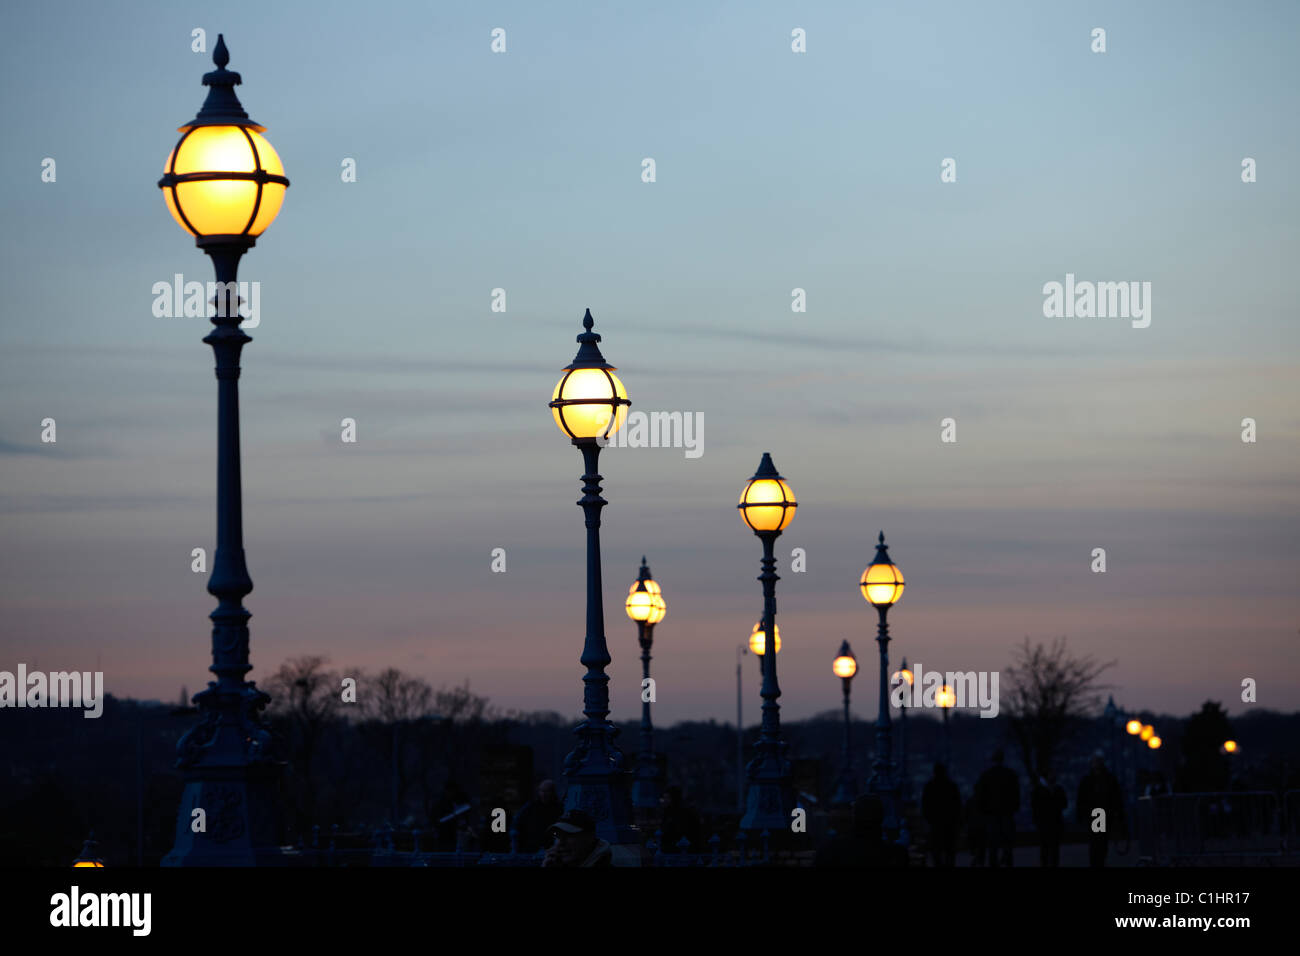 Lights at sunset at Alexandra palace - Stock Image